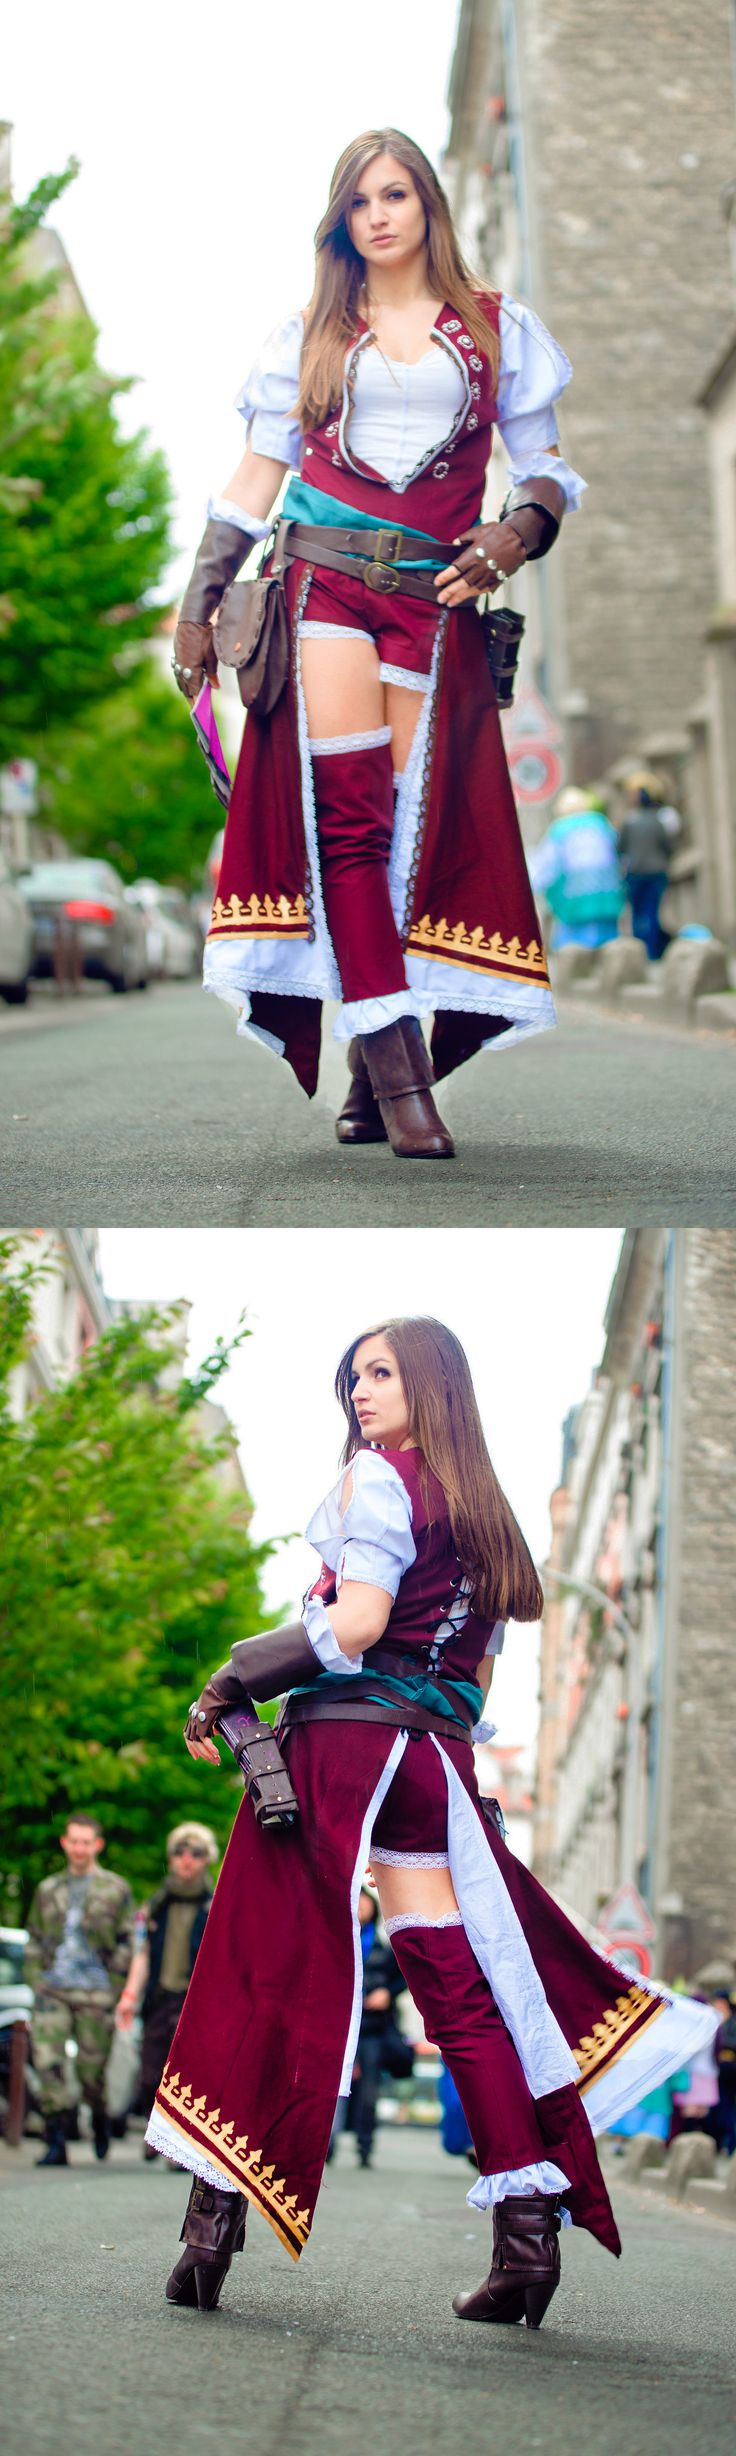 Fiora Cavazza #cosplay from Assassin's Creed Brotherhood